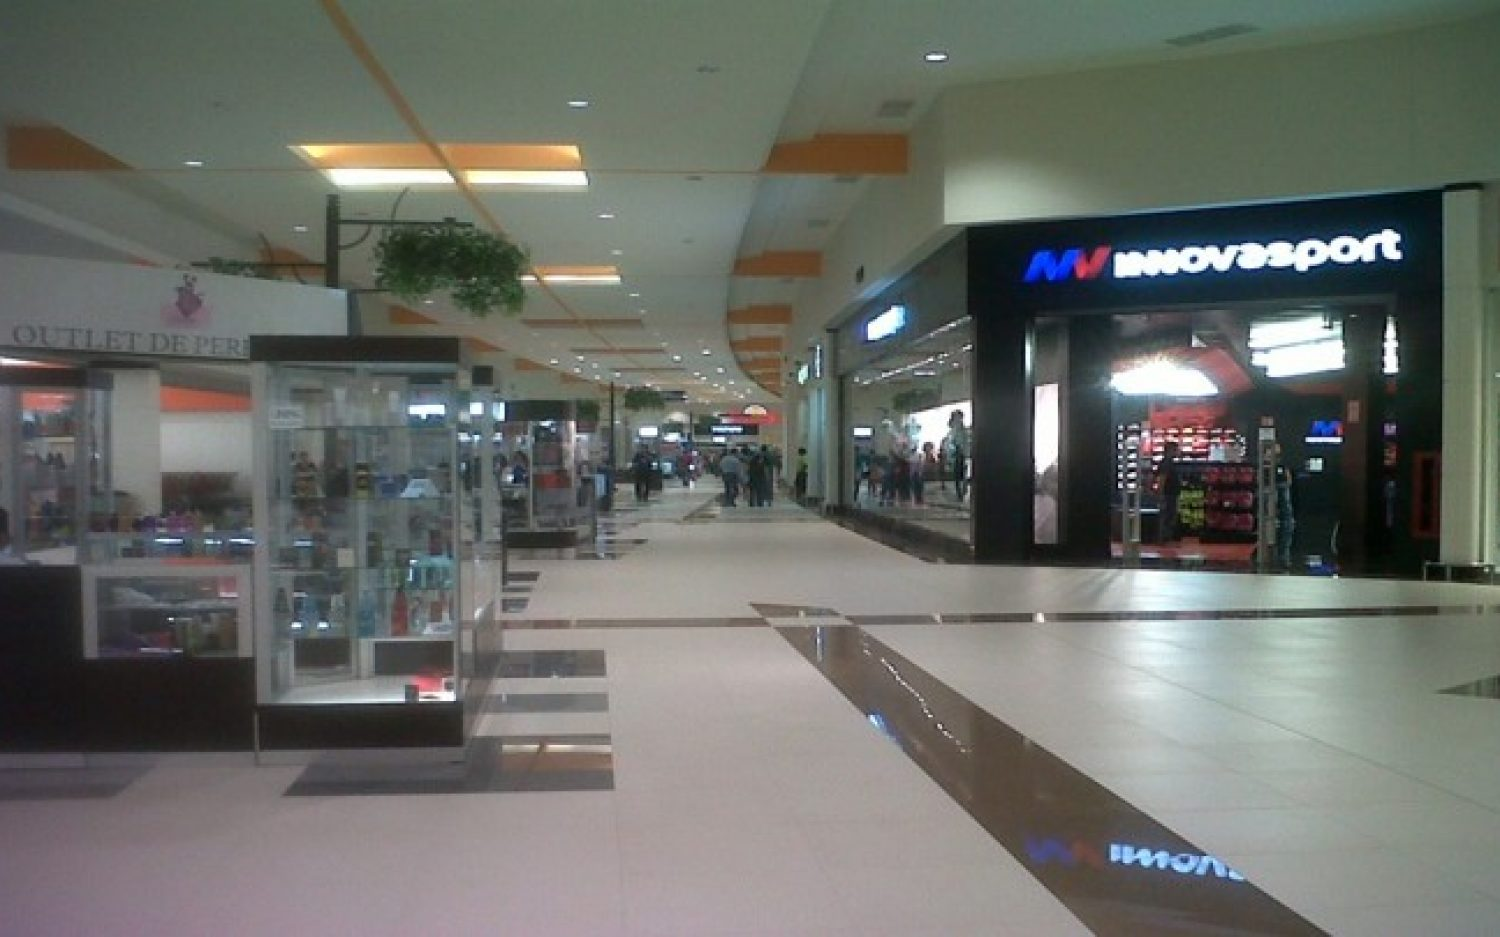 Co-Plaza Sendero Villahermosa (60)